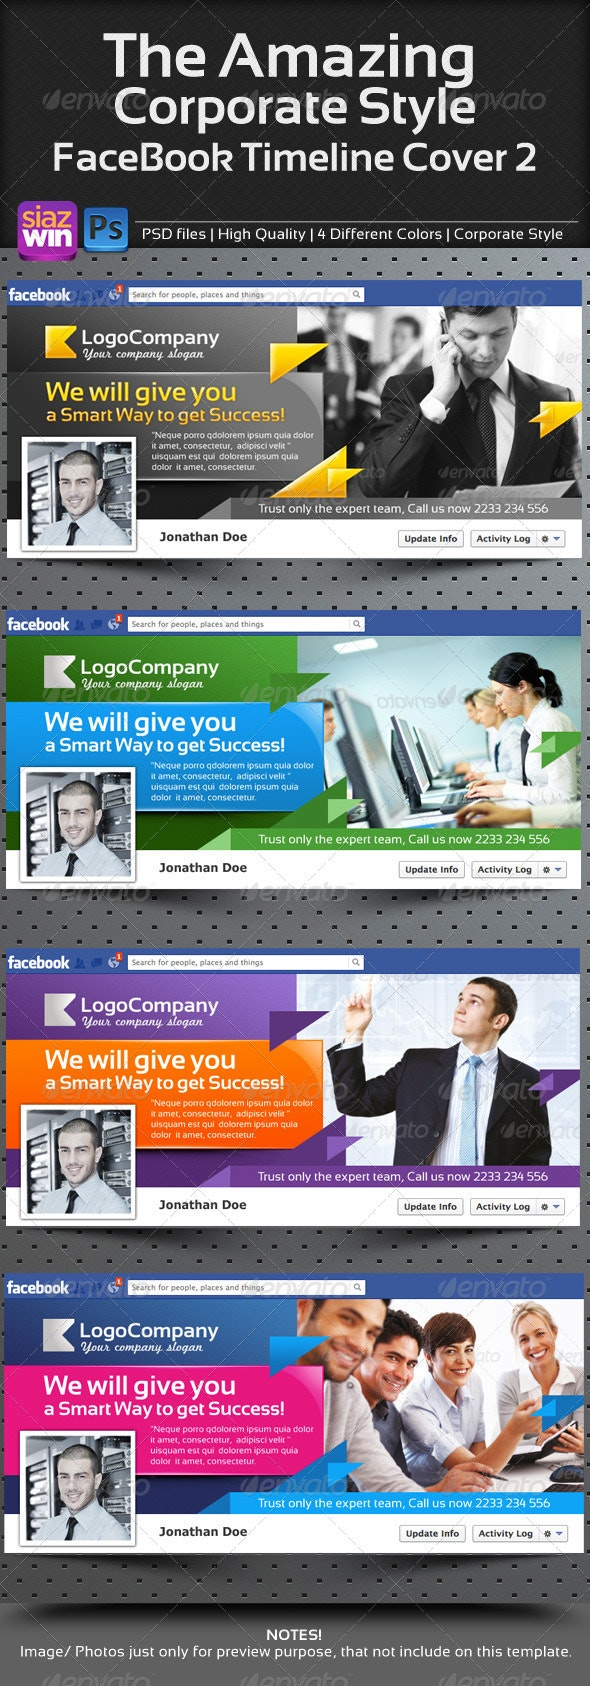 The Amazing Corporate FB Timeline 02 - Facebook Timeline Covers Social Media